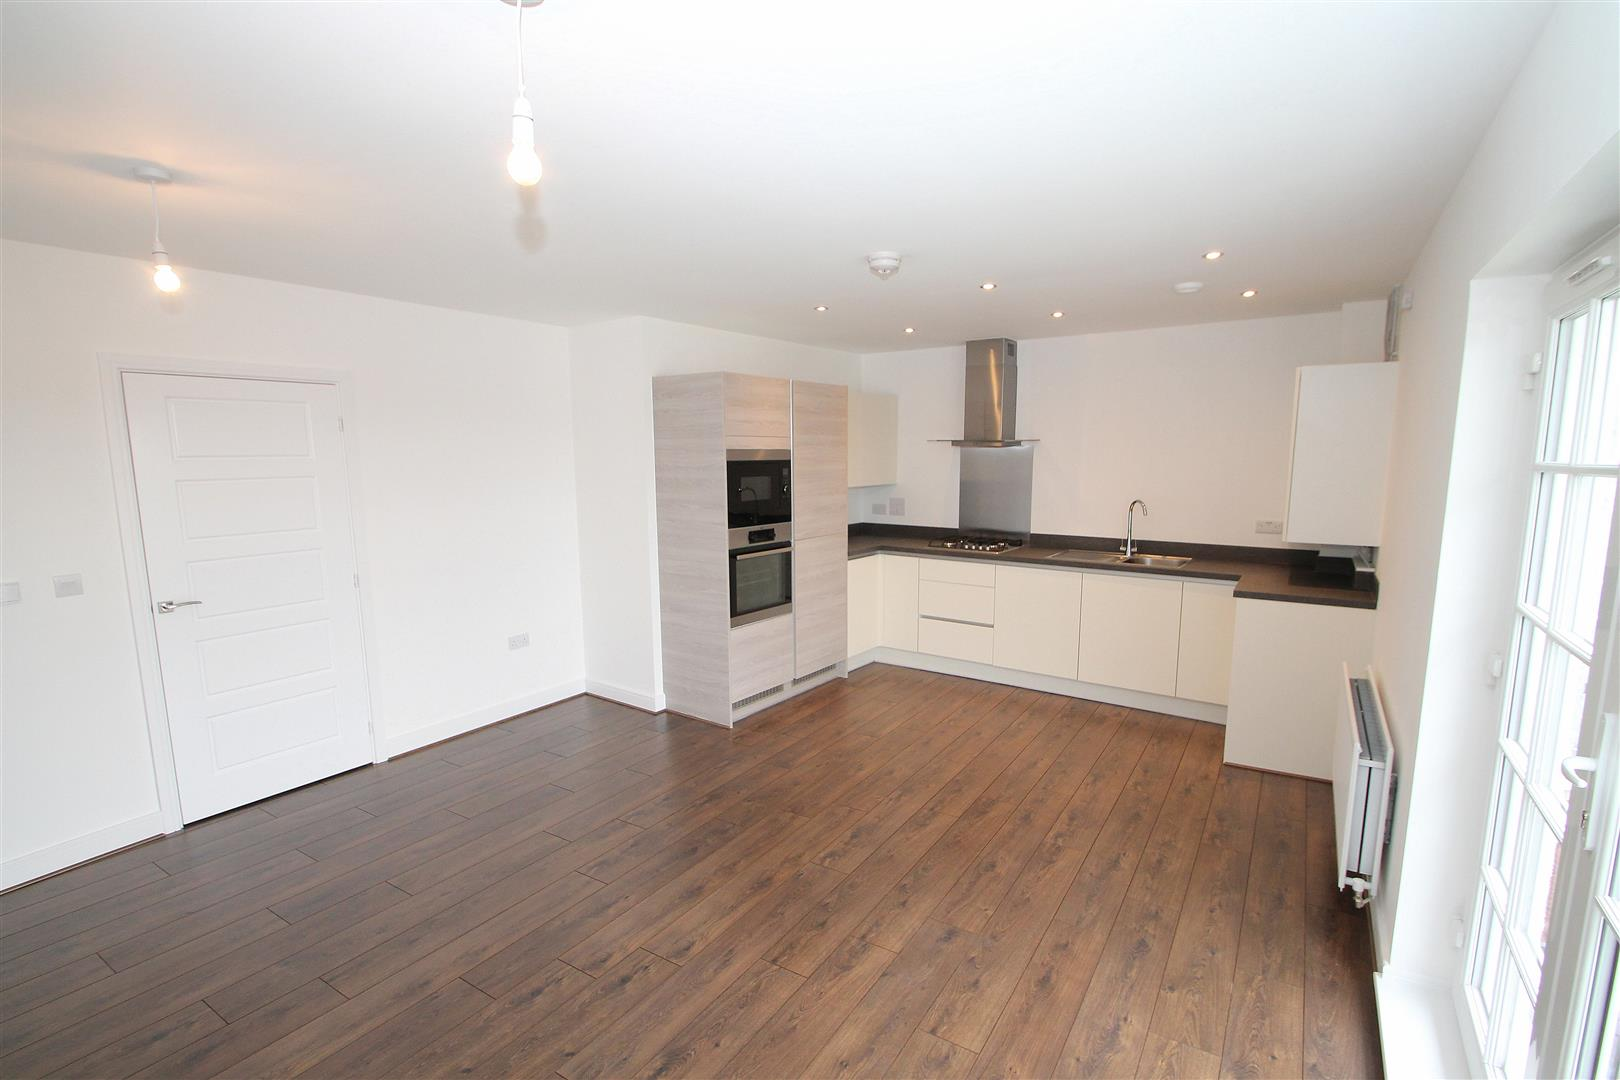 Candy Dene, Ebbsfleet Valley, Swanscombe - Town and City Homes